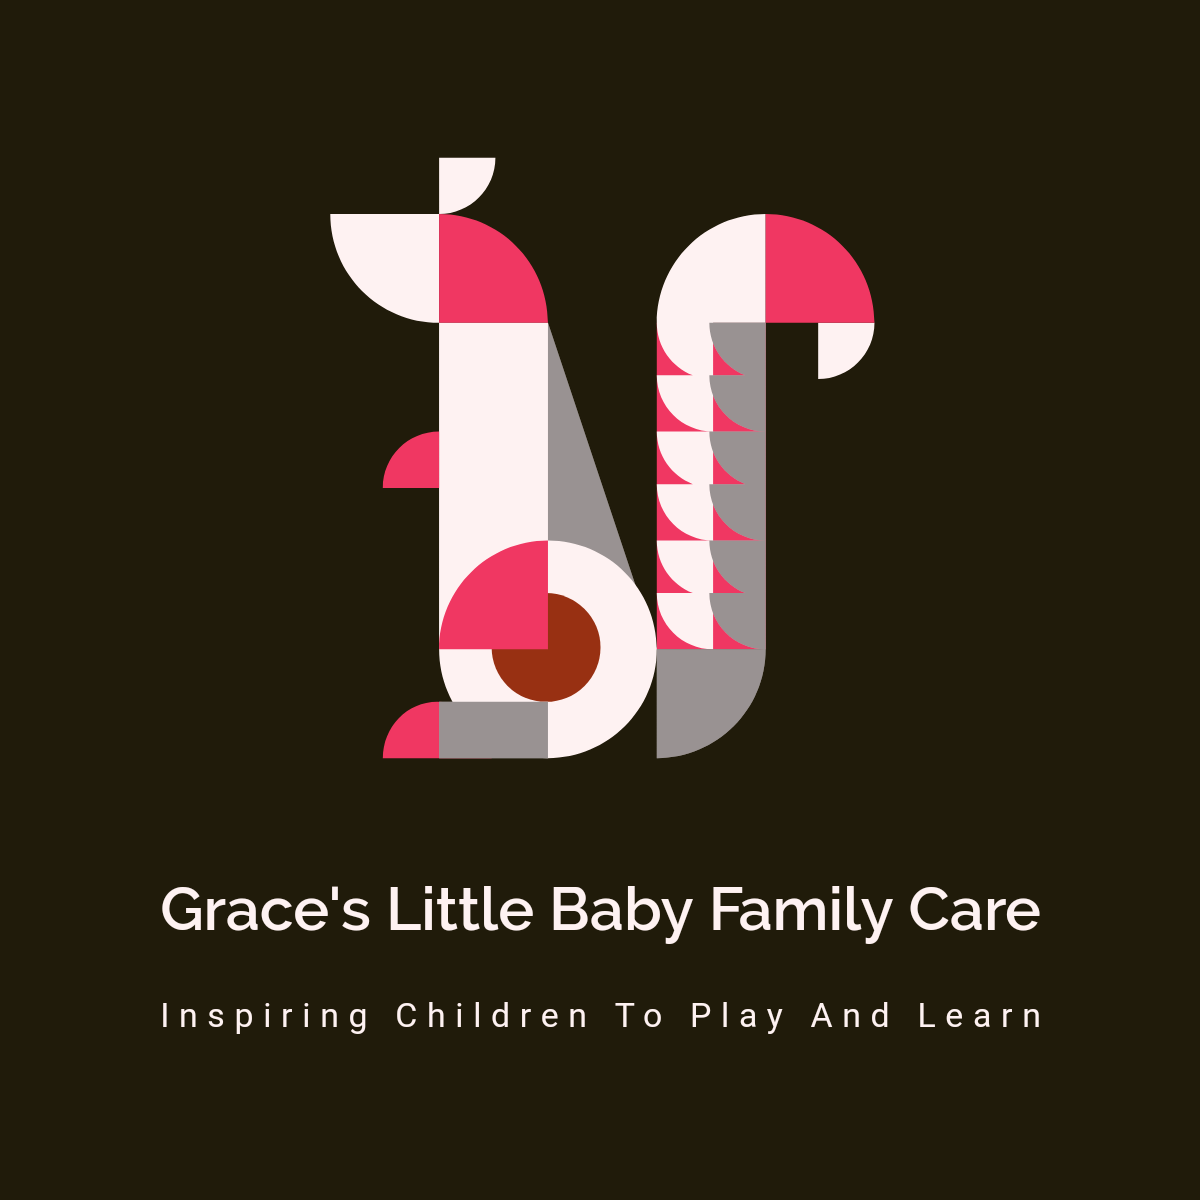 Grace's Little Baby Family Care